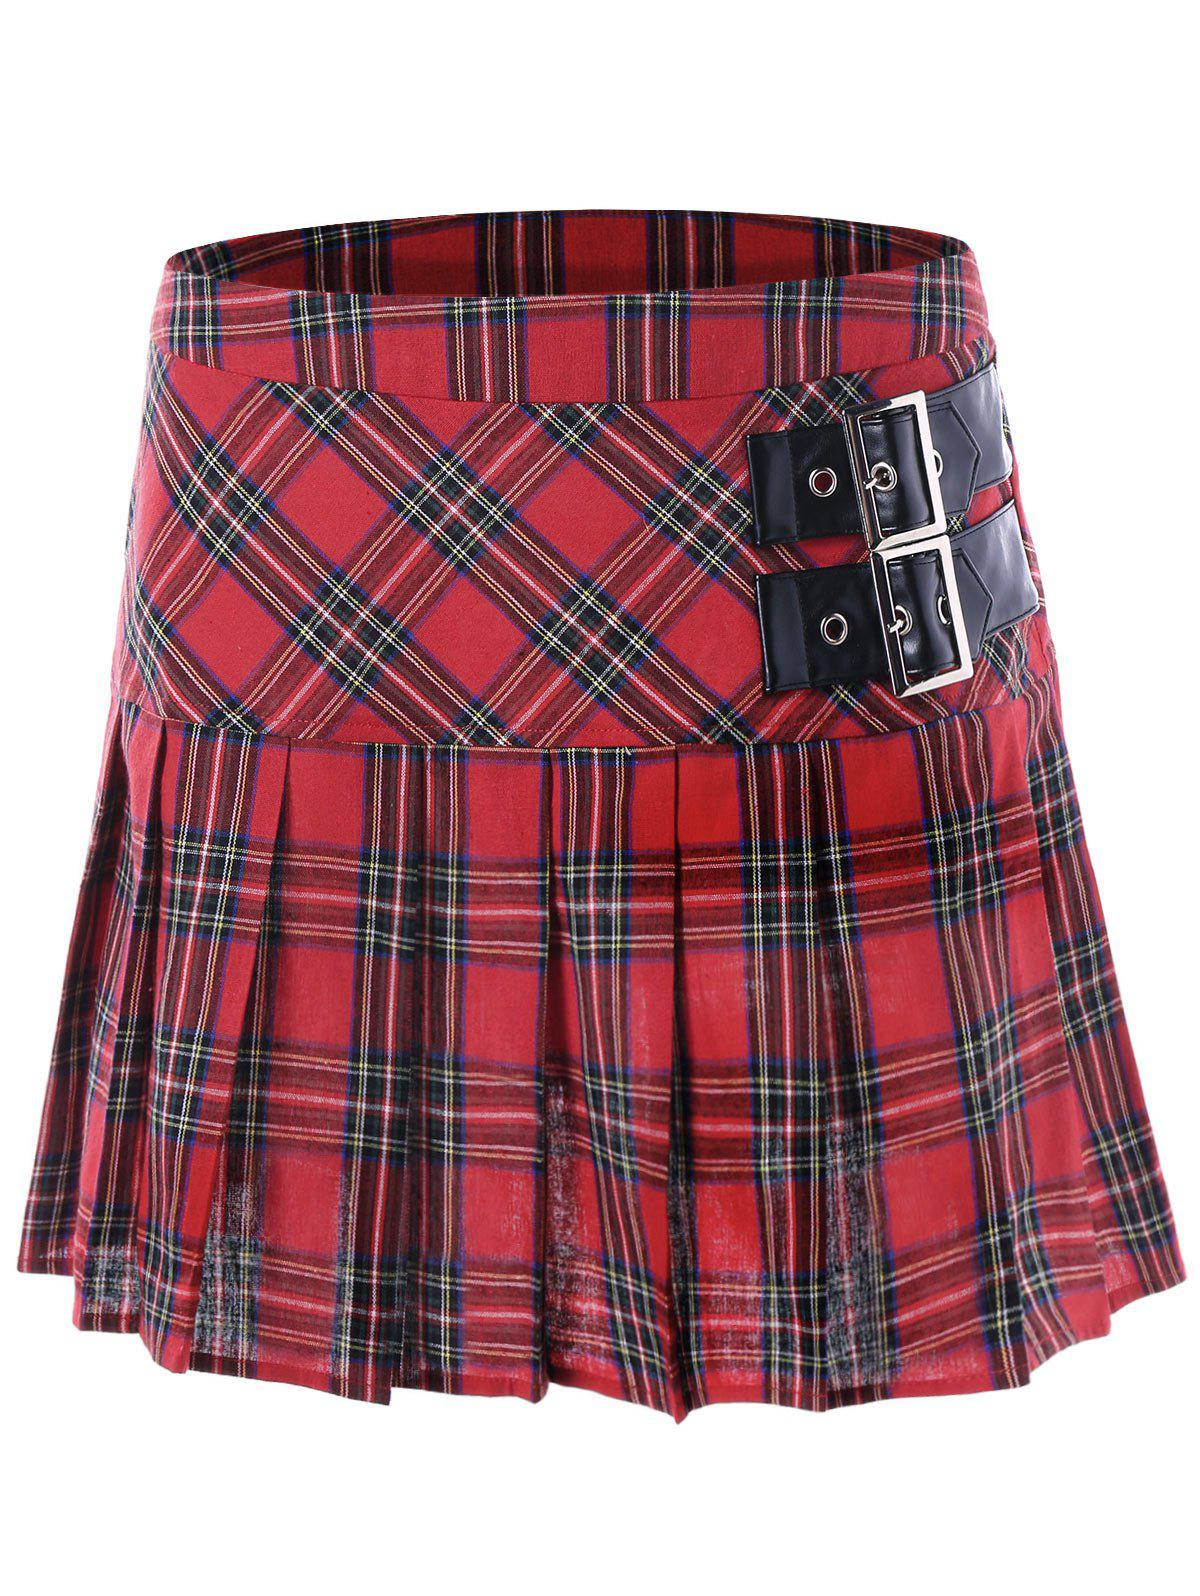 Buckles A-line Pleated Plaid Skirt - RED M